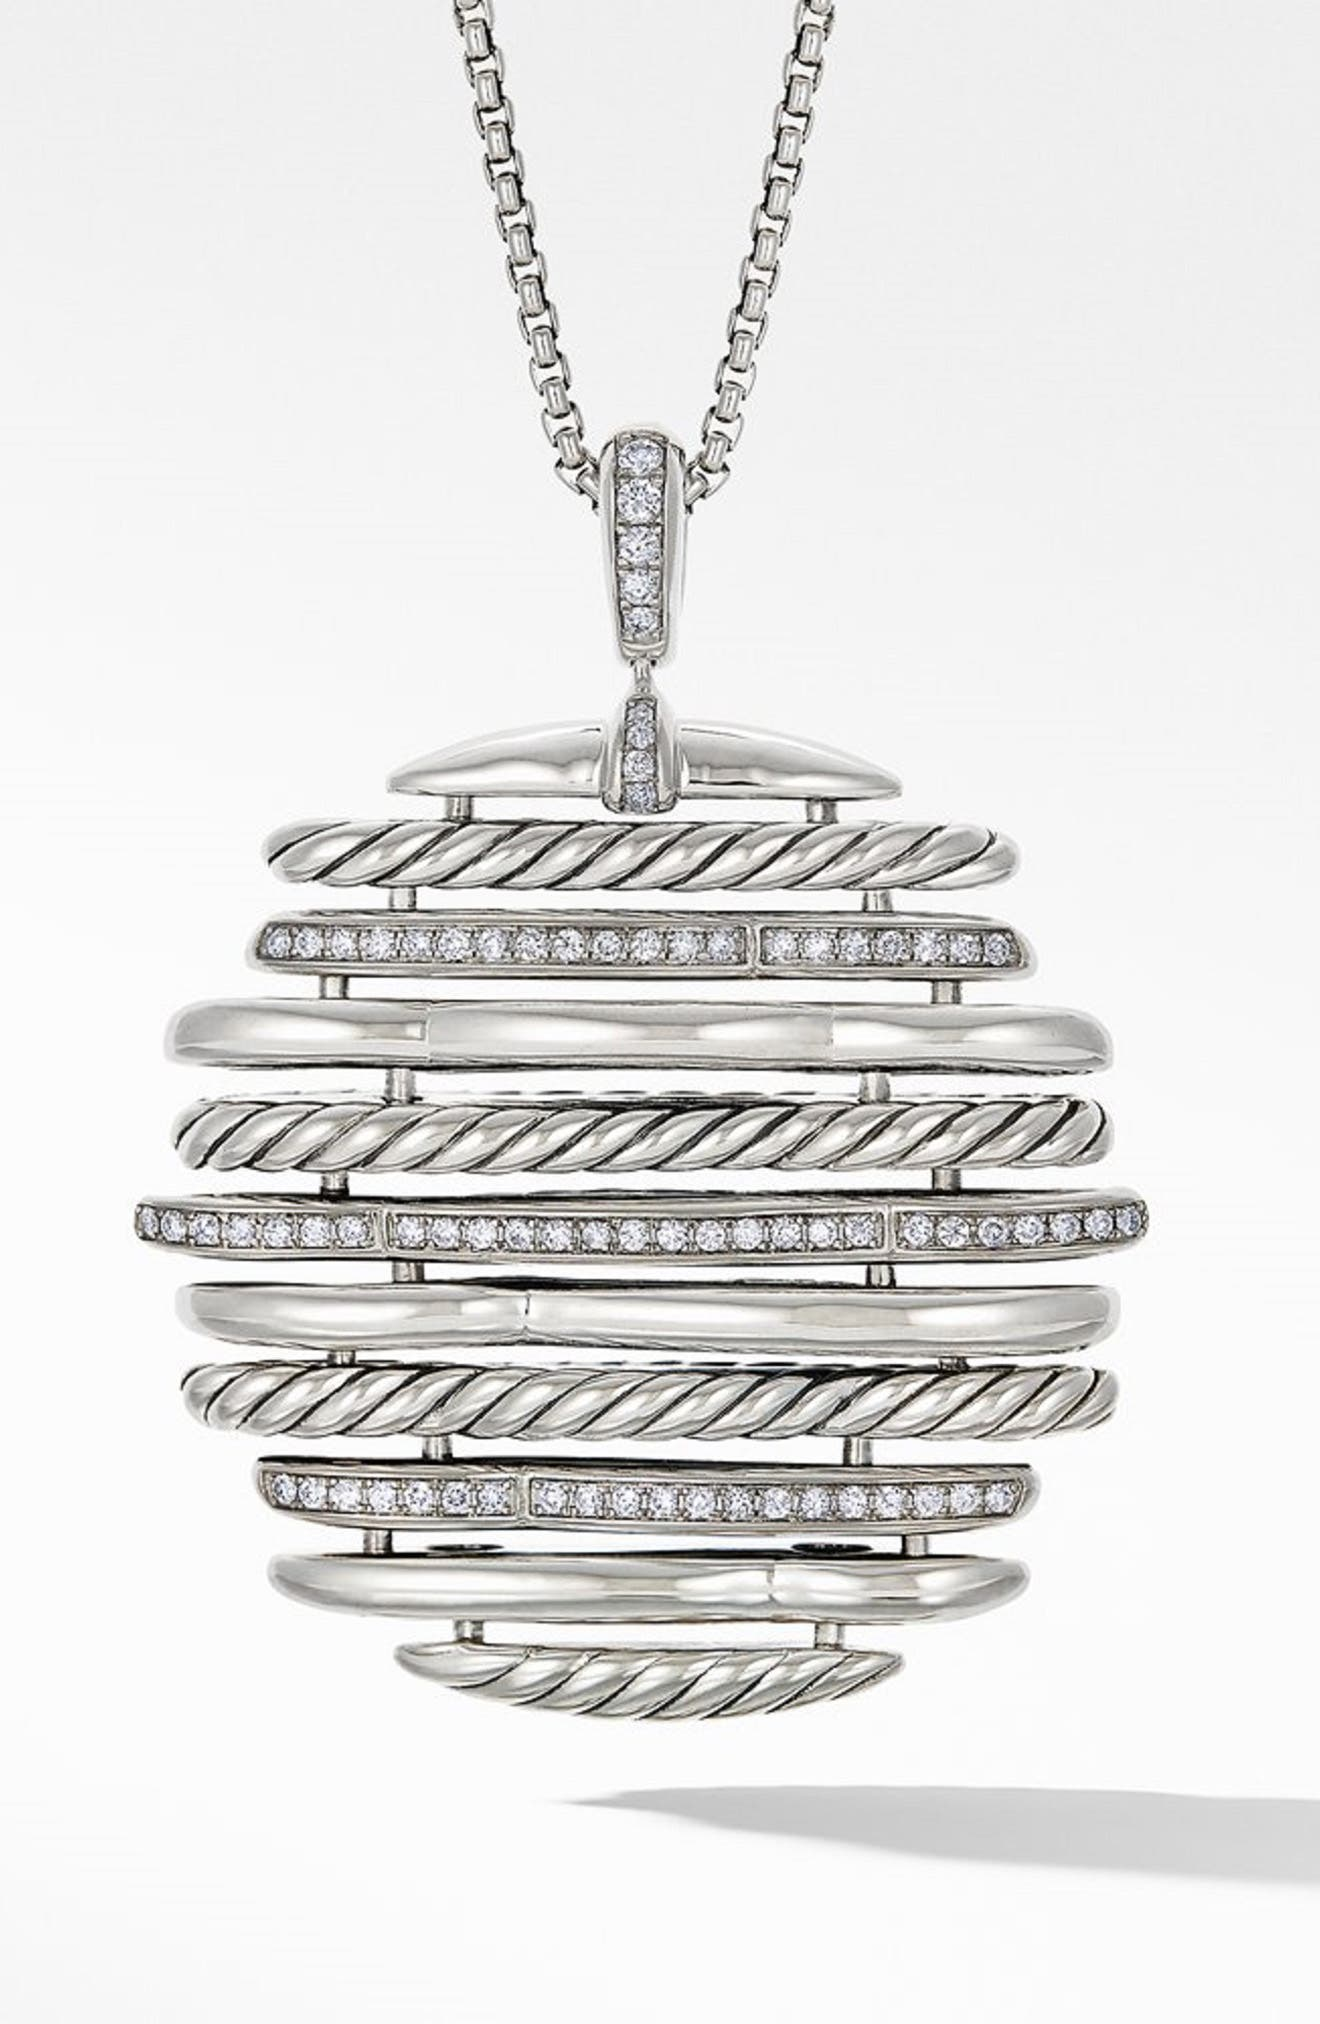 Tides Pendant Necklace with Diamonds,                             Main thumbnail 1, color,                             STERLING SILVER/ DIAMOND